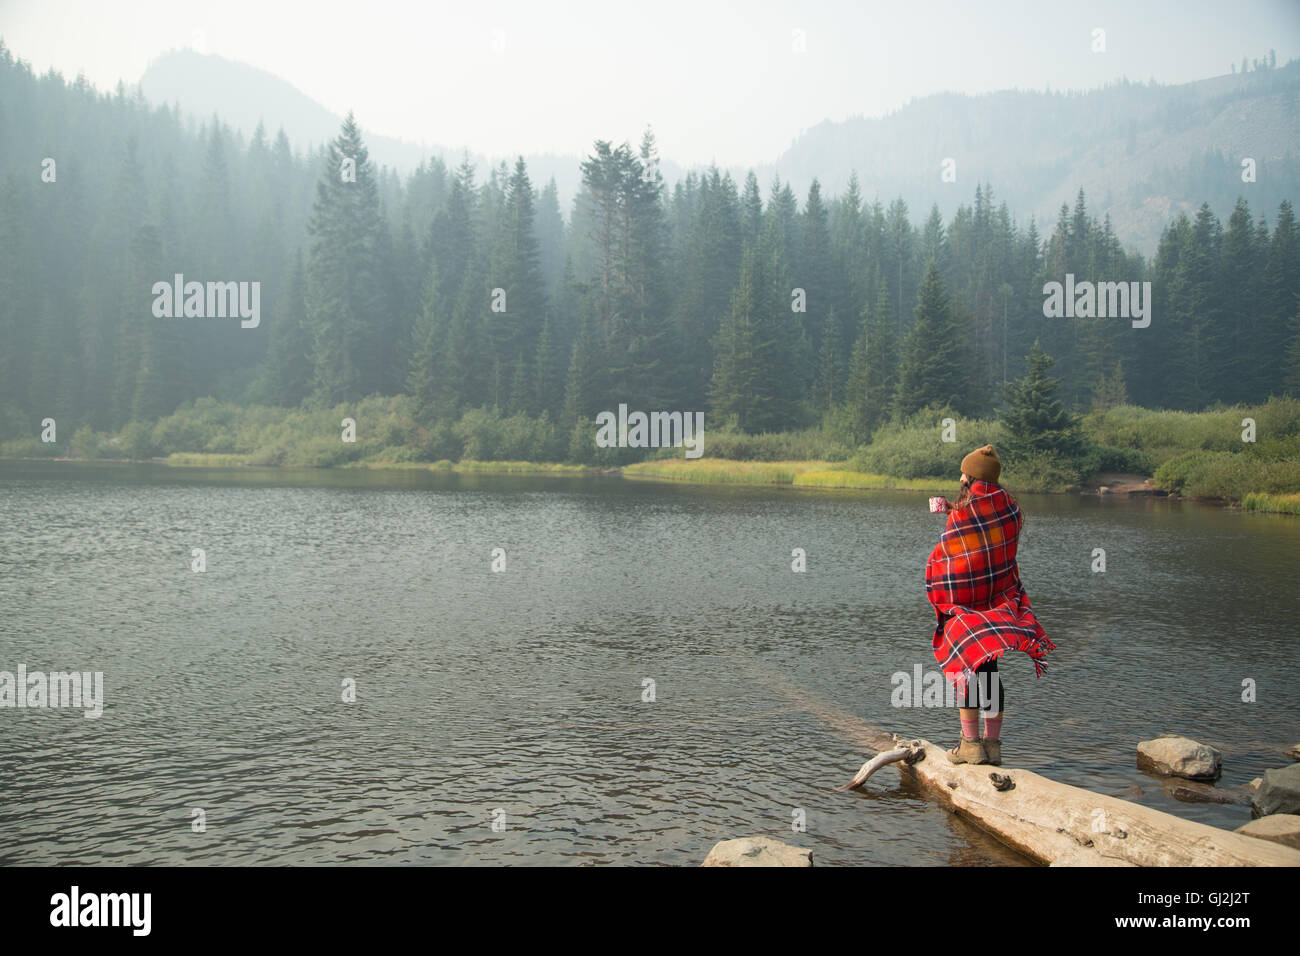 Woman wrapped in tartan blanket drinking coffee by misty lake, Mount Hood National Forest, Oregon, USA - Stock Image